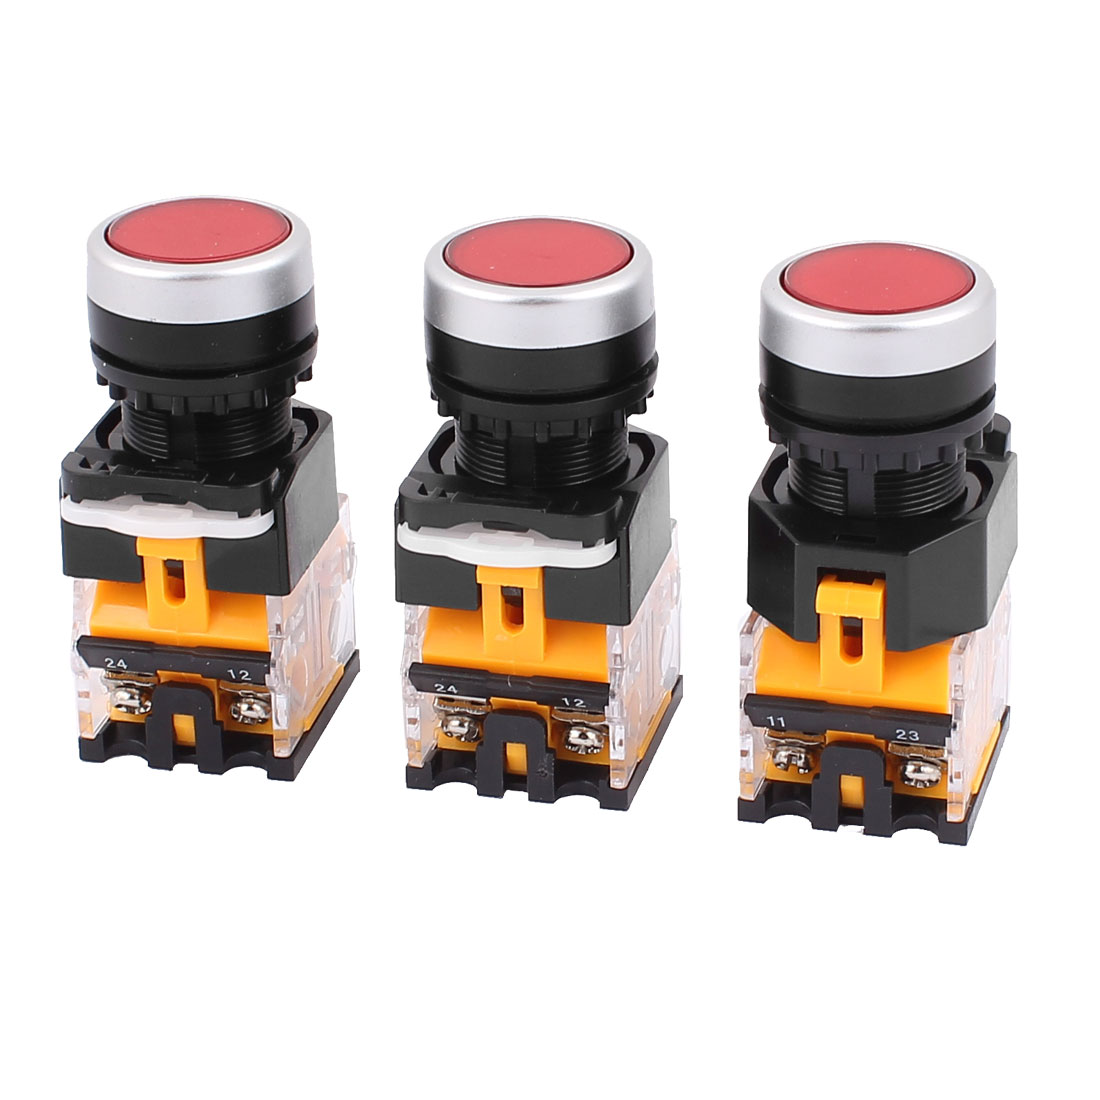 AC 660V 10A NO NC 4-Pin Momentary Red Push Button Switch 3PCS